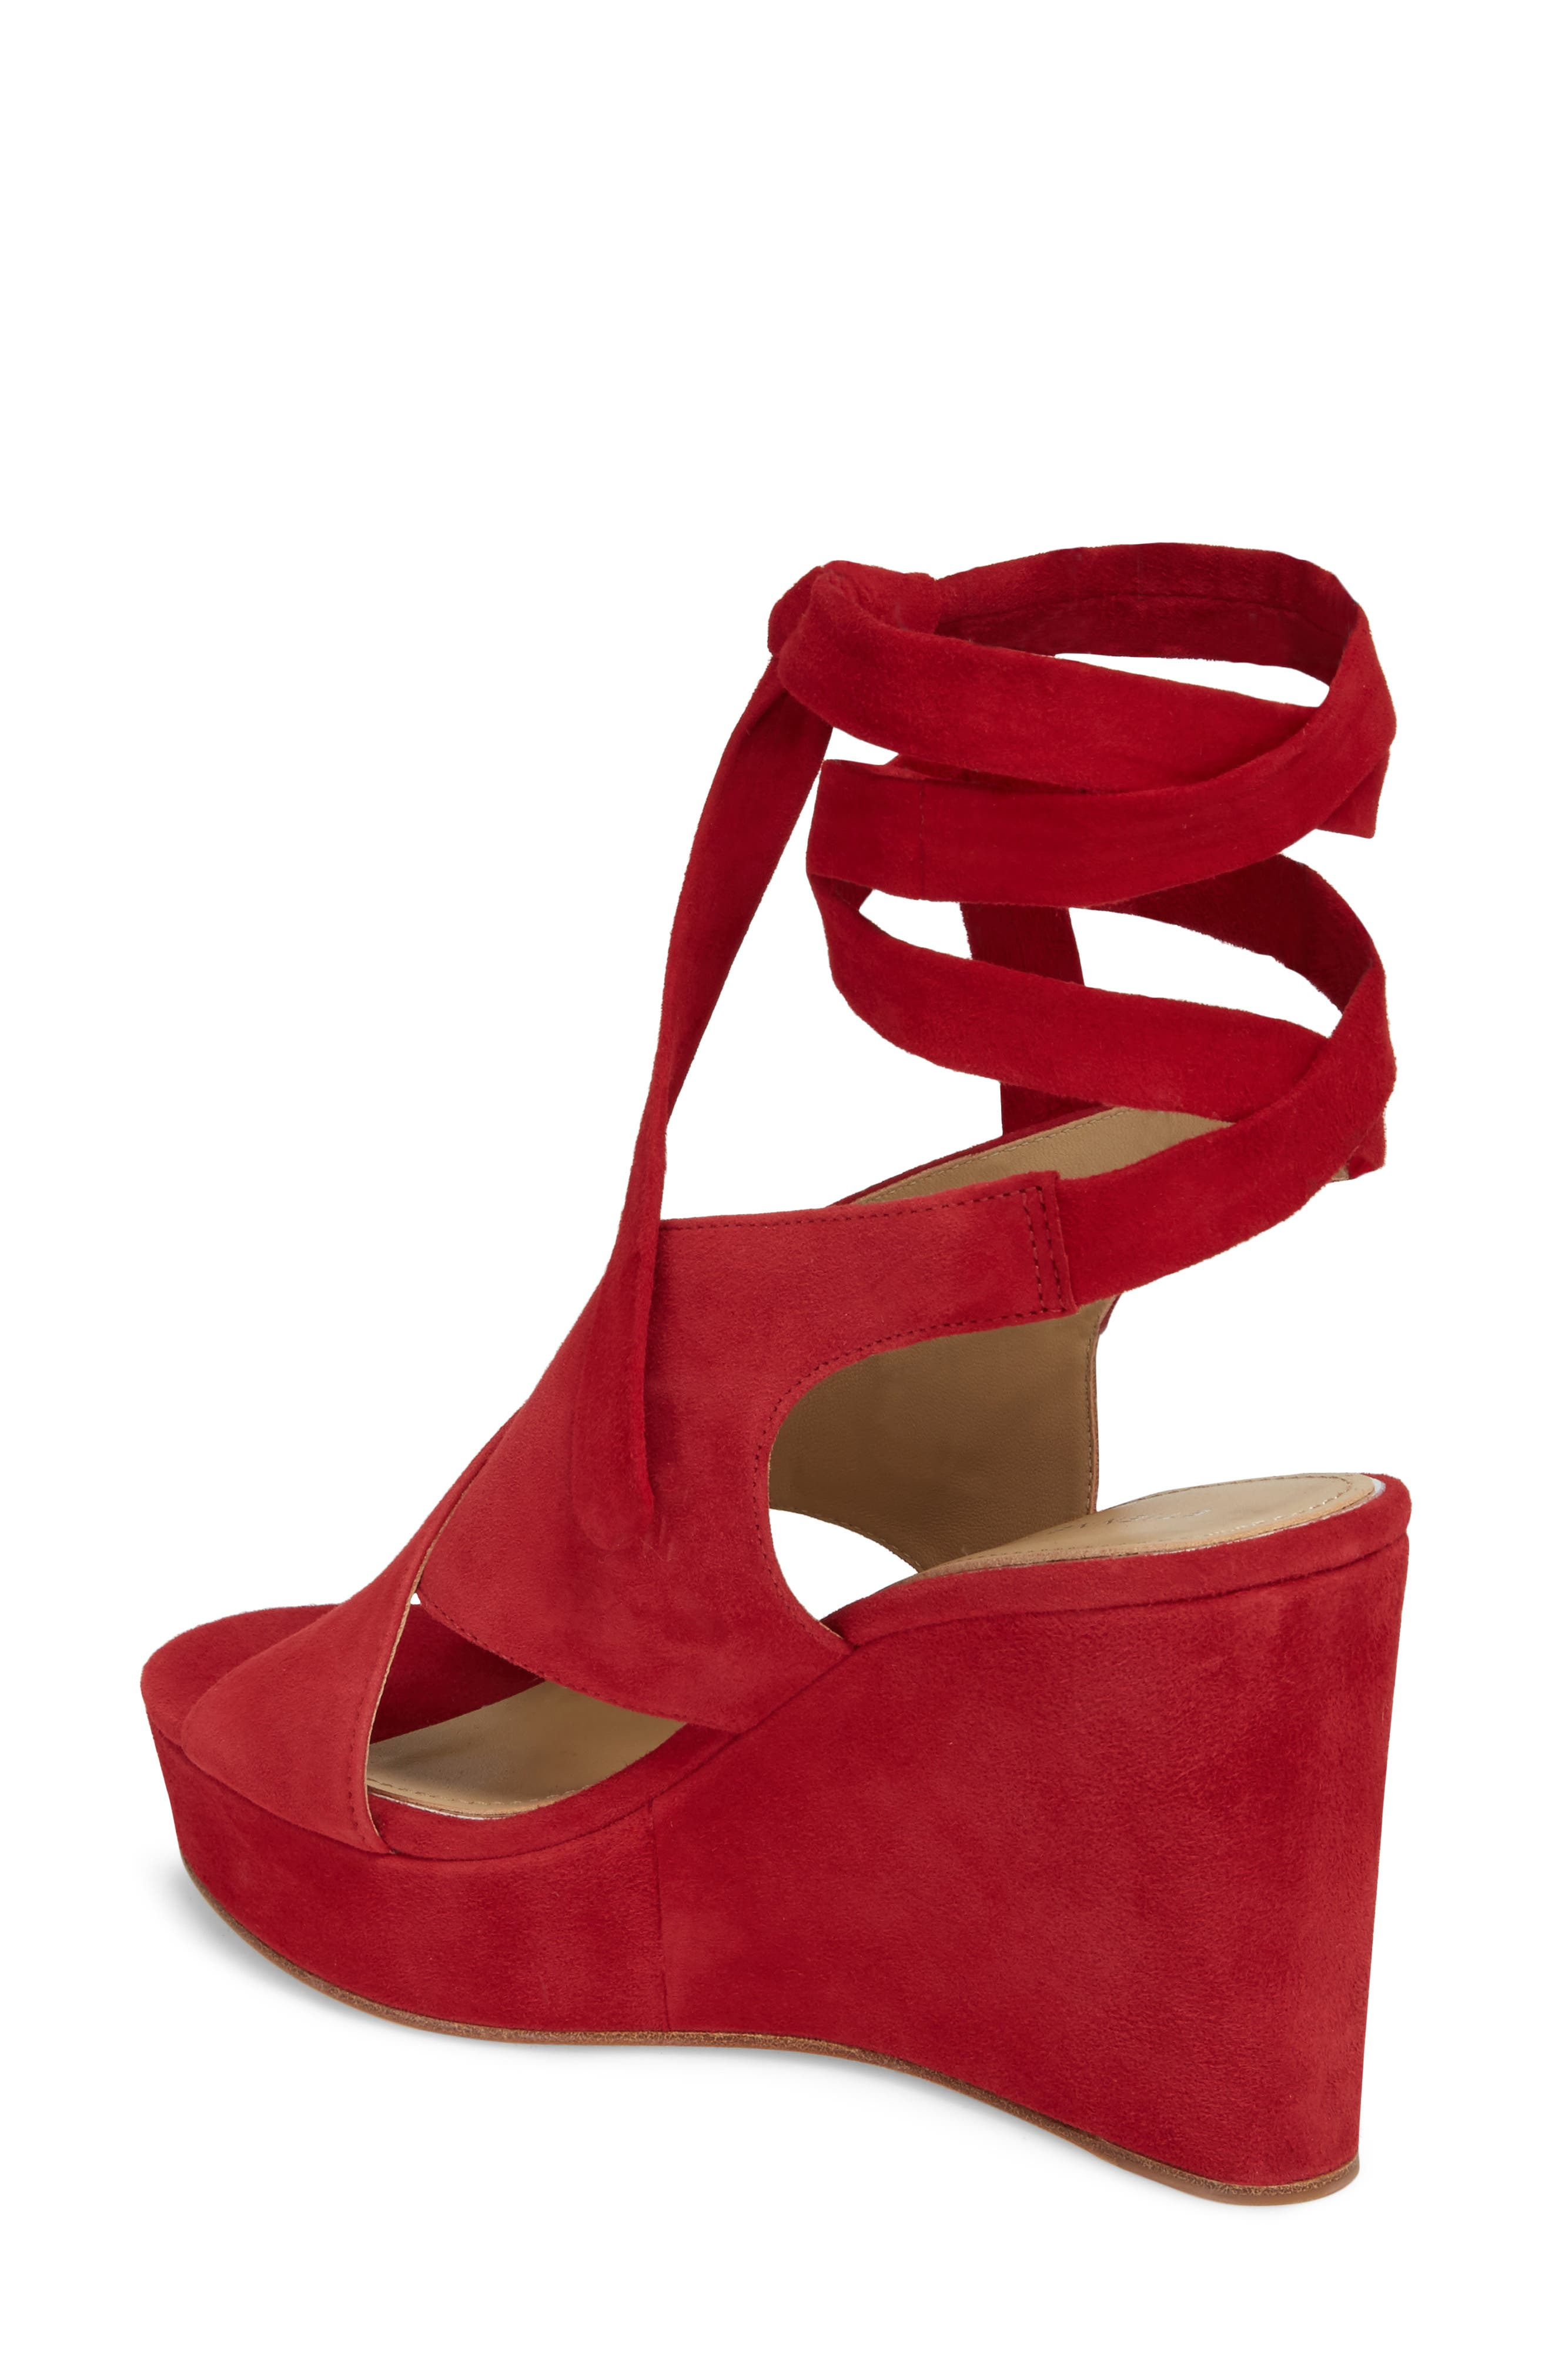 Dominica Platform Wedge Sandal,                             Alternate thumbnail 2, color,                             Cherry Suede